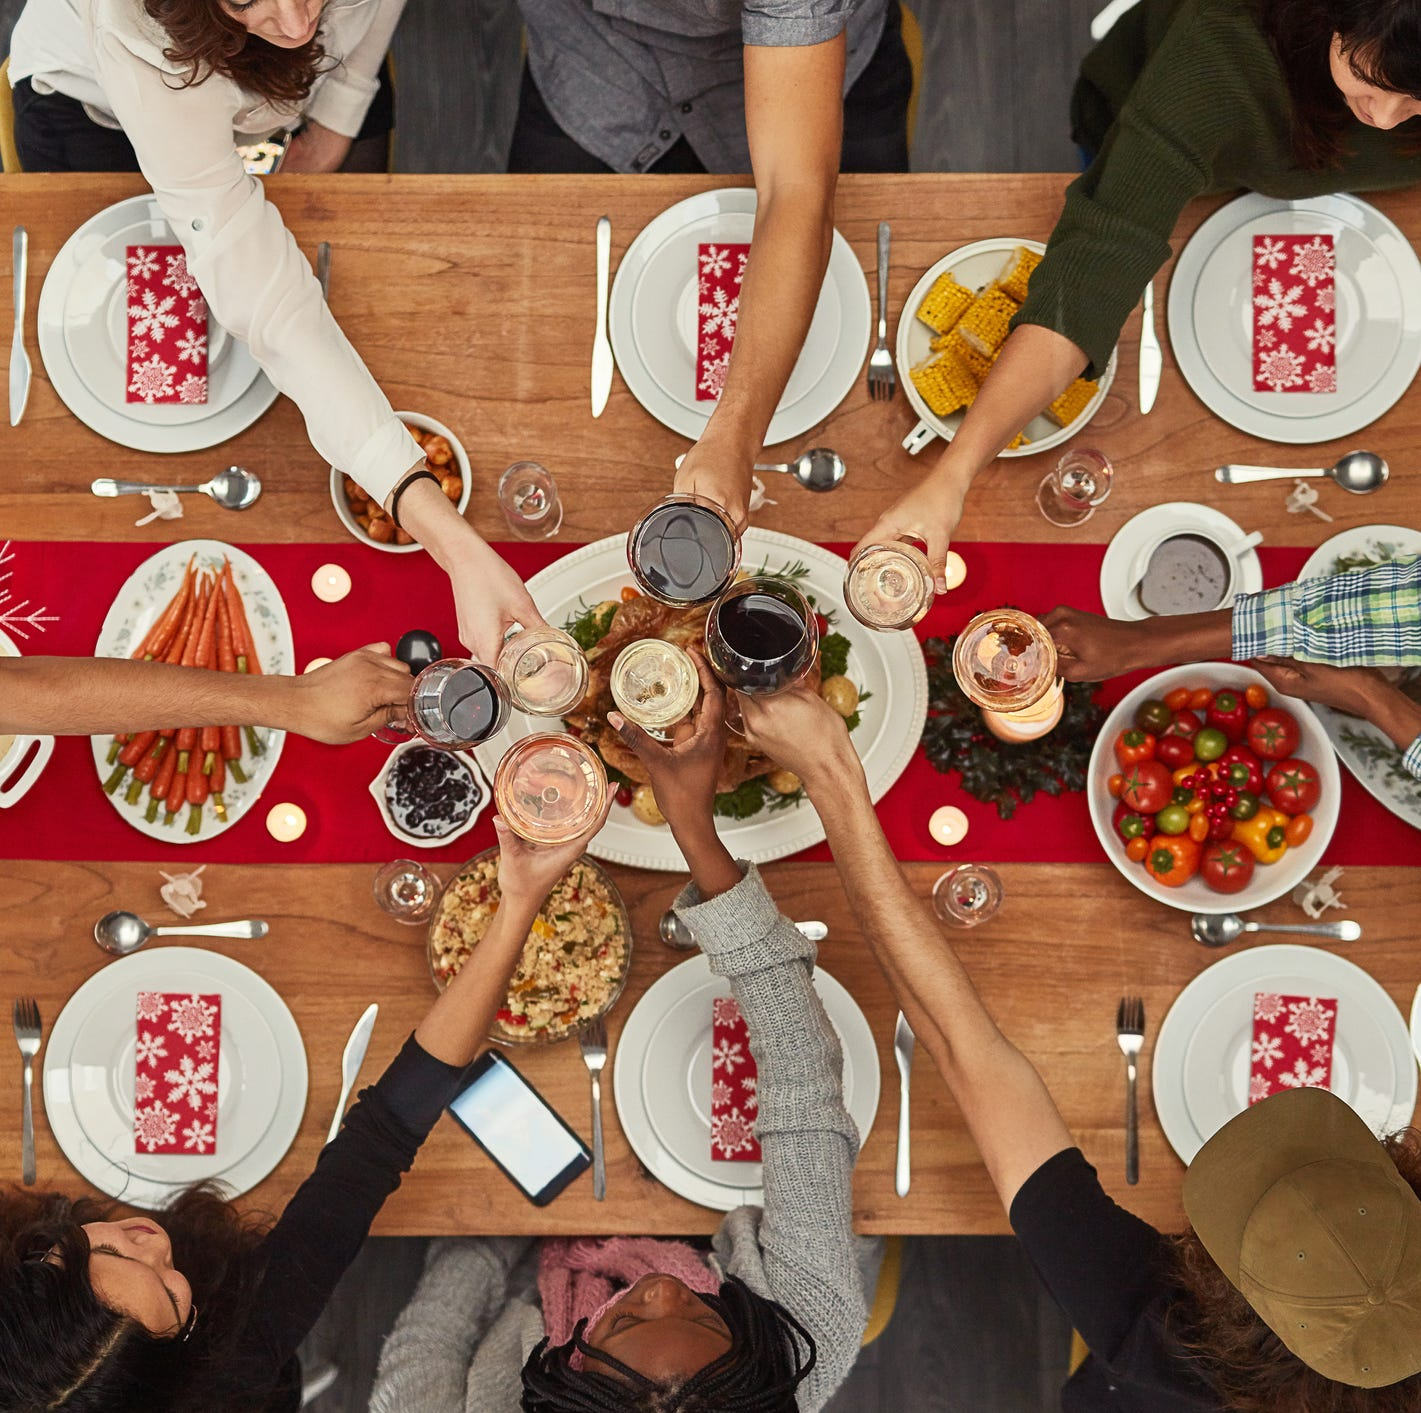 Don't stress out over talking politics at Thanksgiving dinner. We've got some tips.